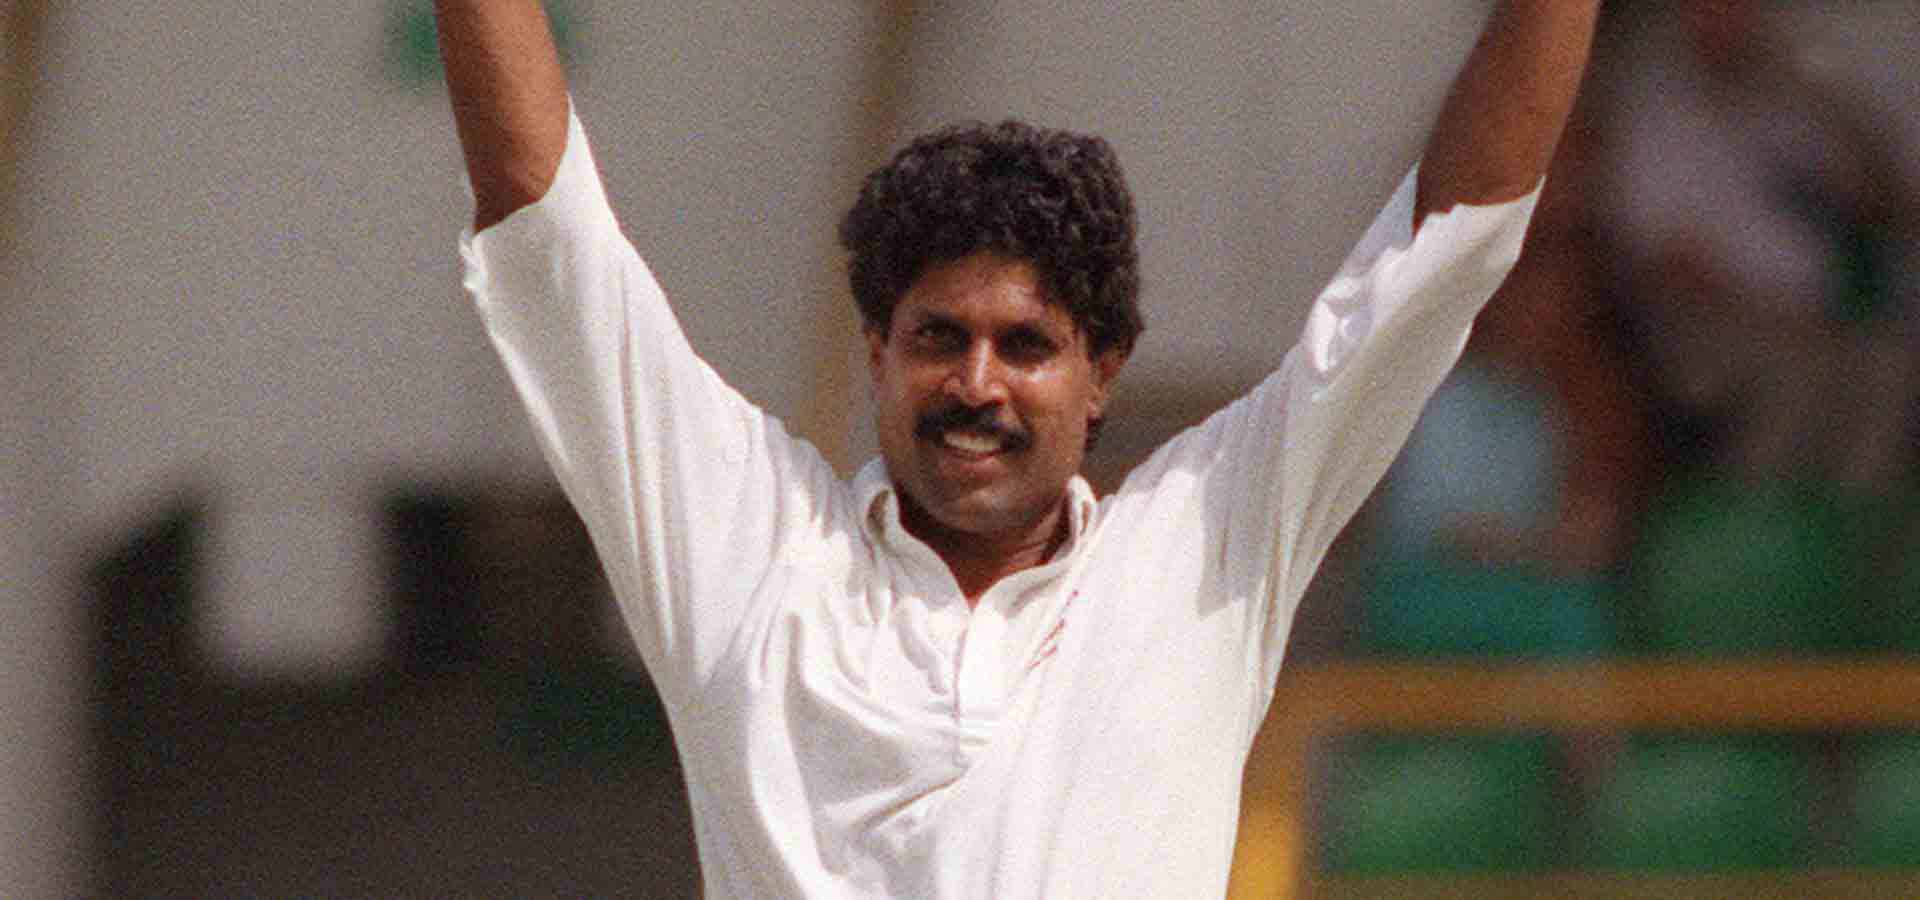 Kapil Dev celebrating a wicket.